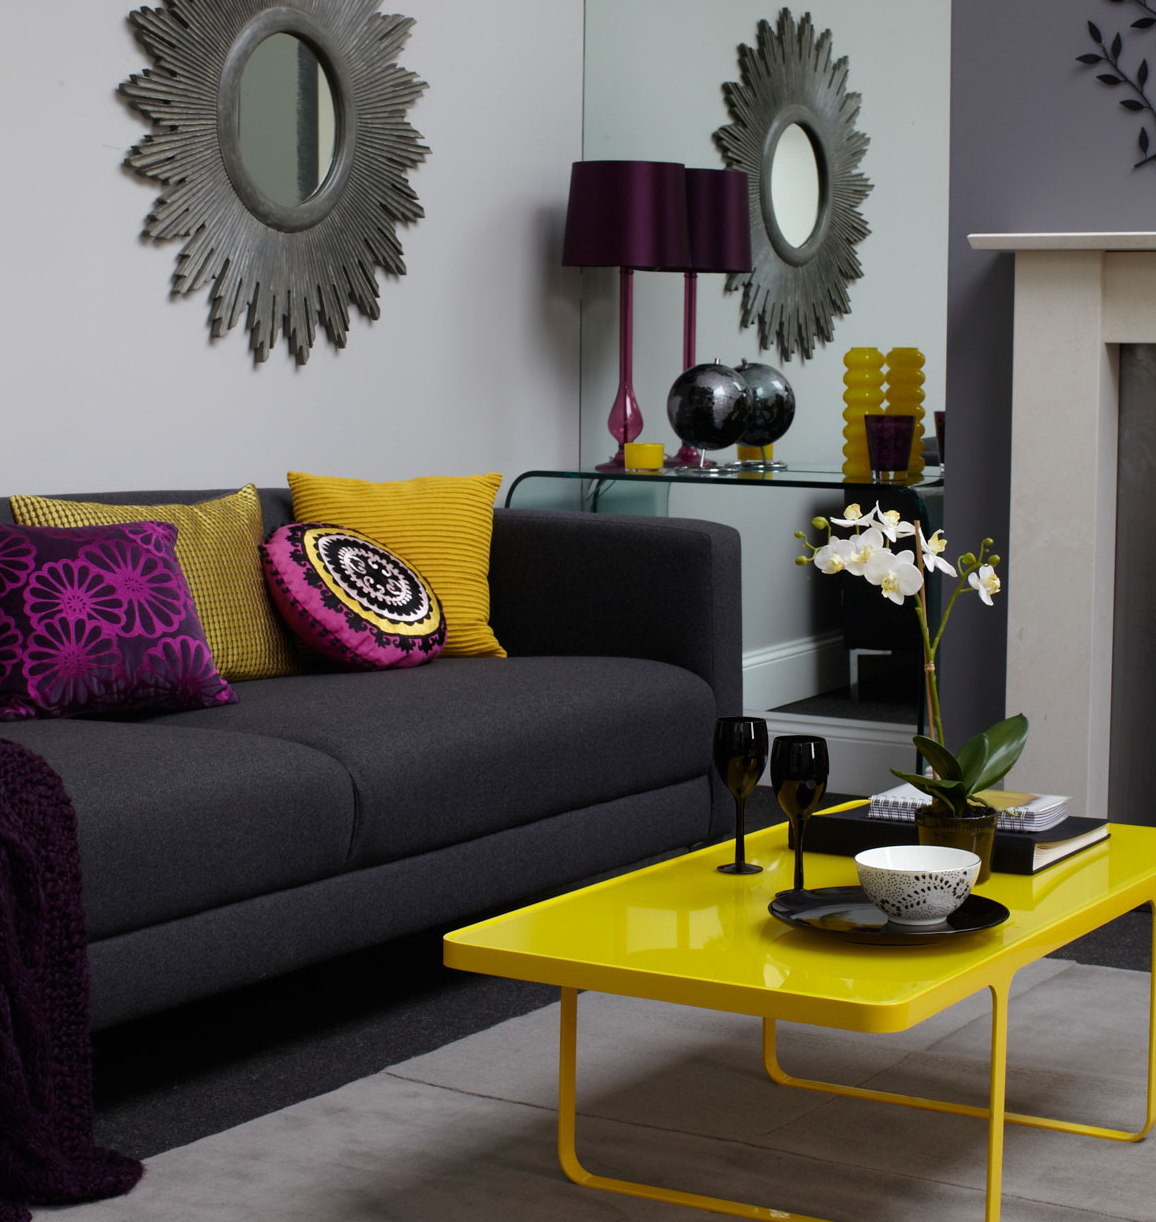 Ideas For Interior Design: How To Choose The Right Colours For Interior Design